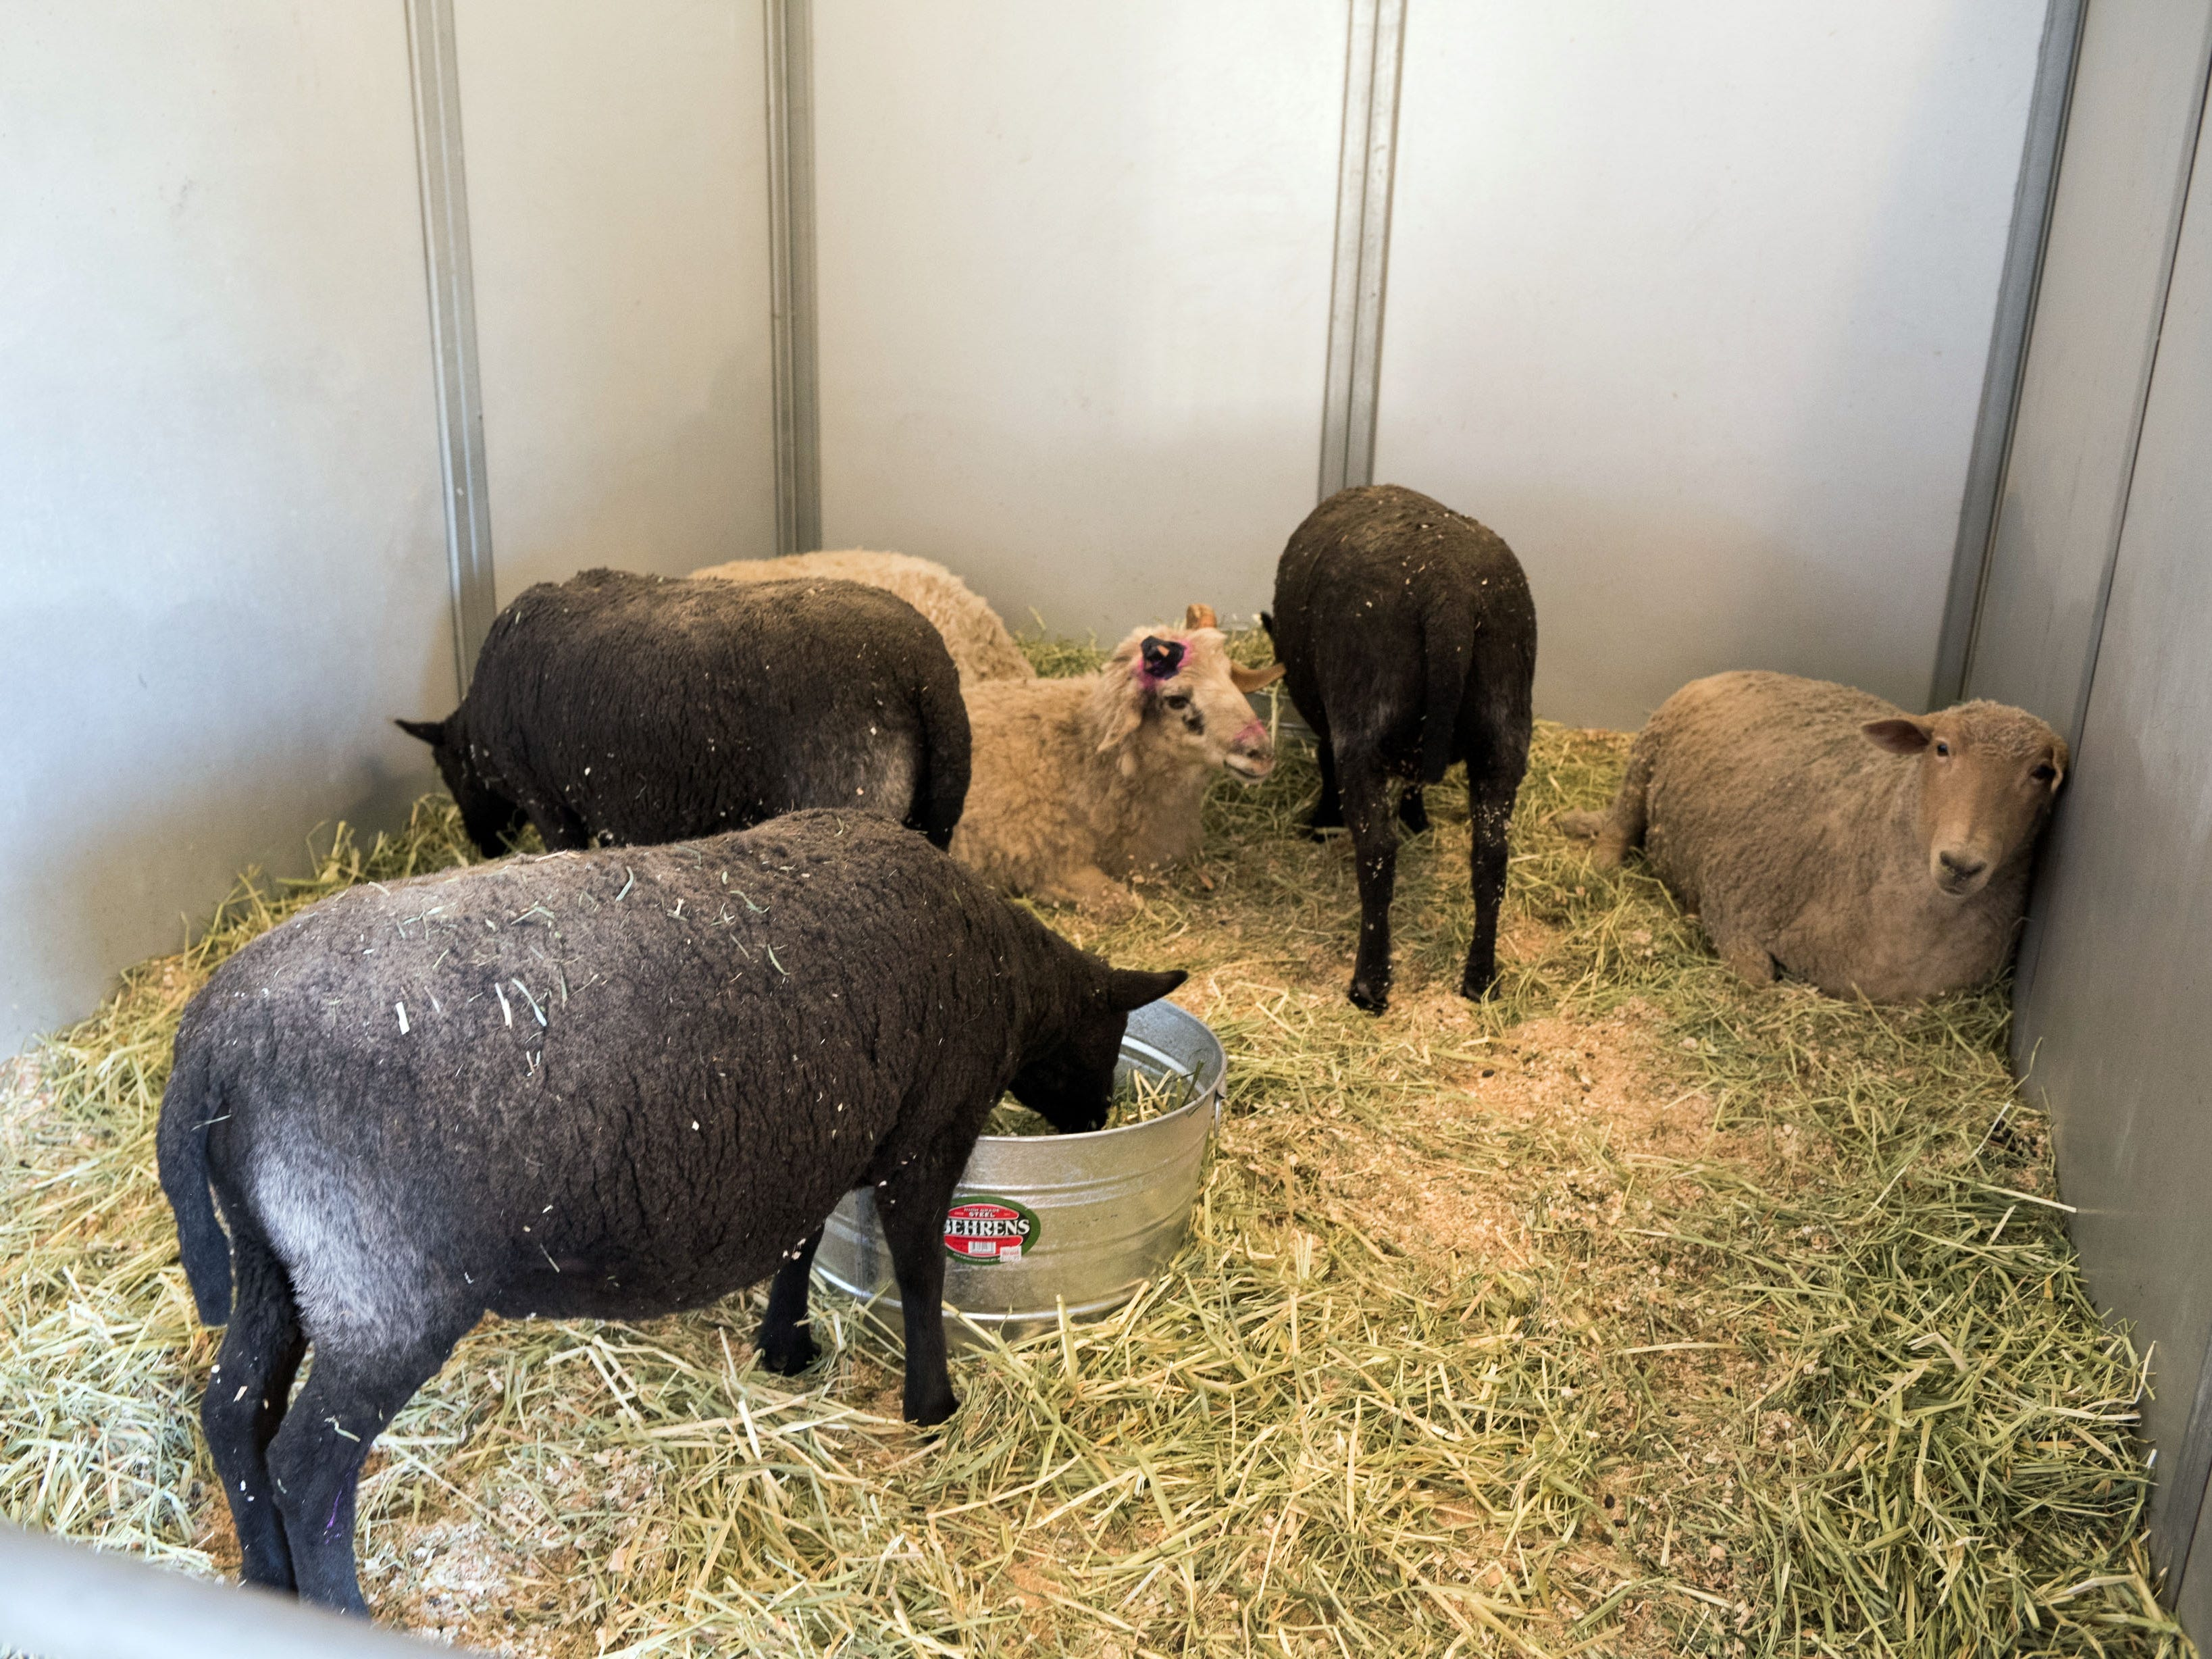 Livestock displaced by the Woolsey Fire are kept in stalls on the campus of Pierce College in Woodland Hills, Calif. on Nov. 12, 2018.